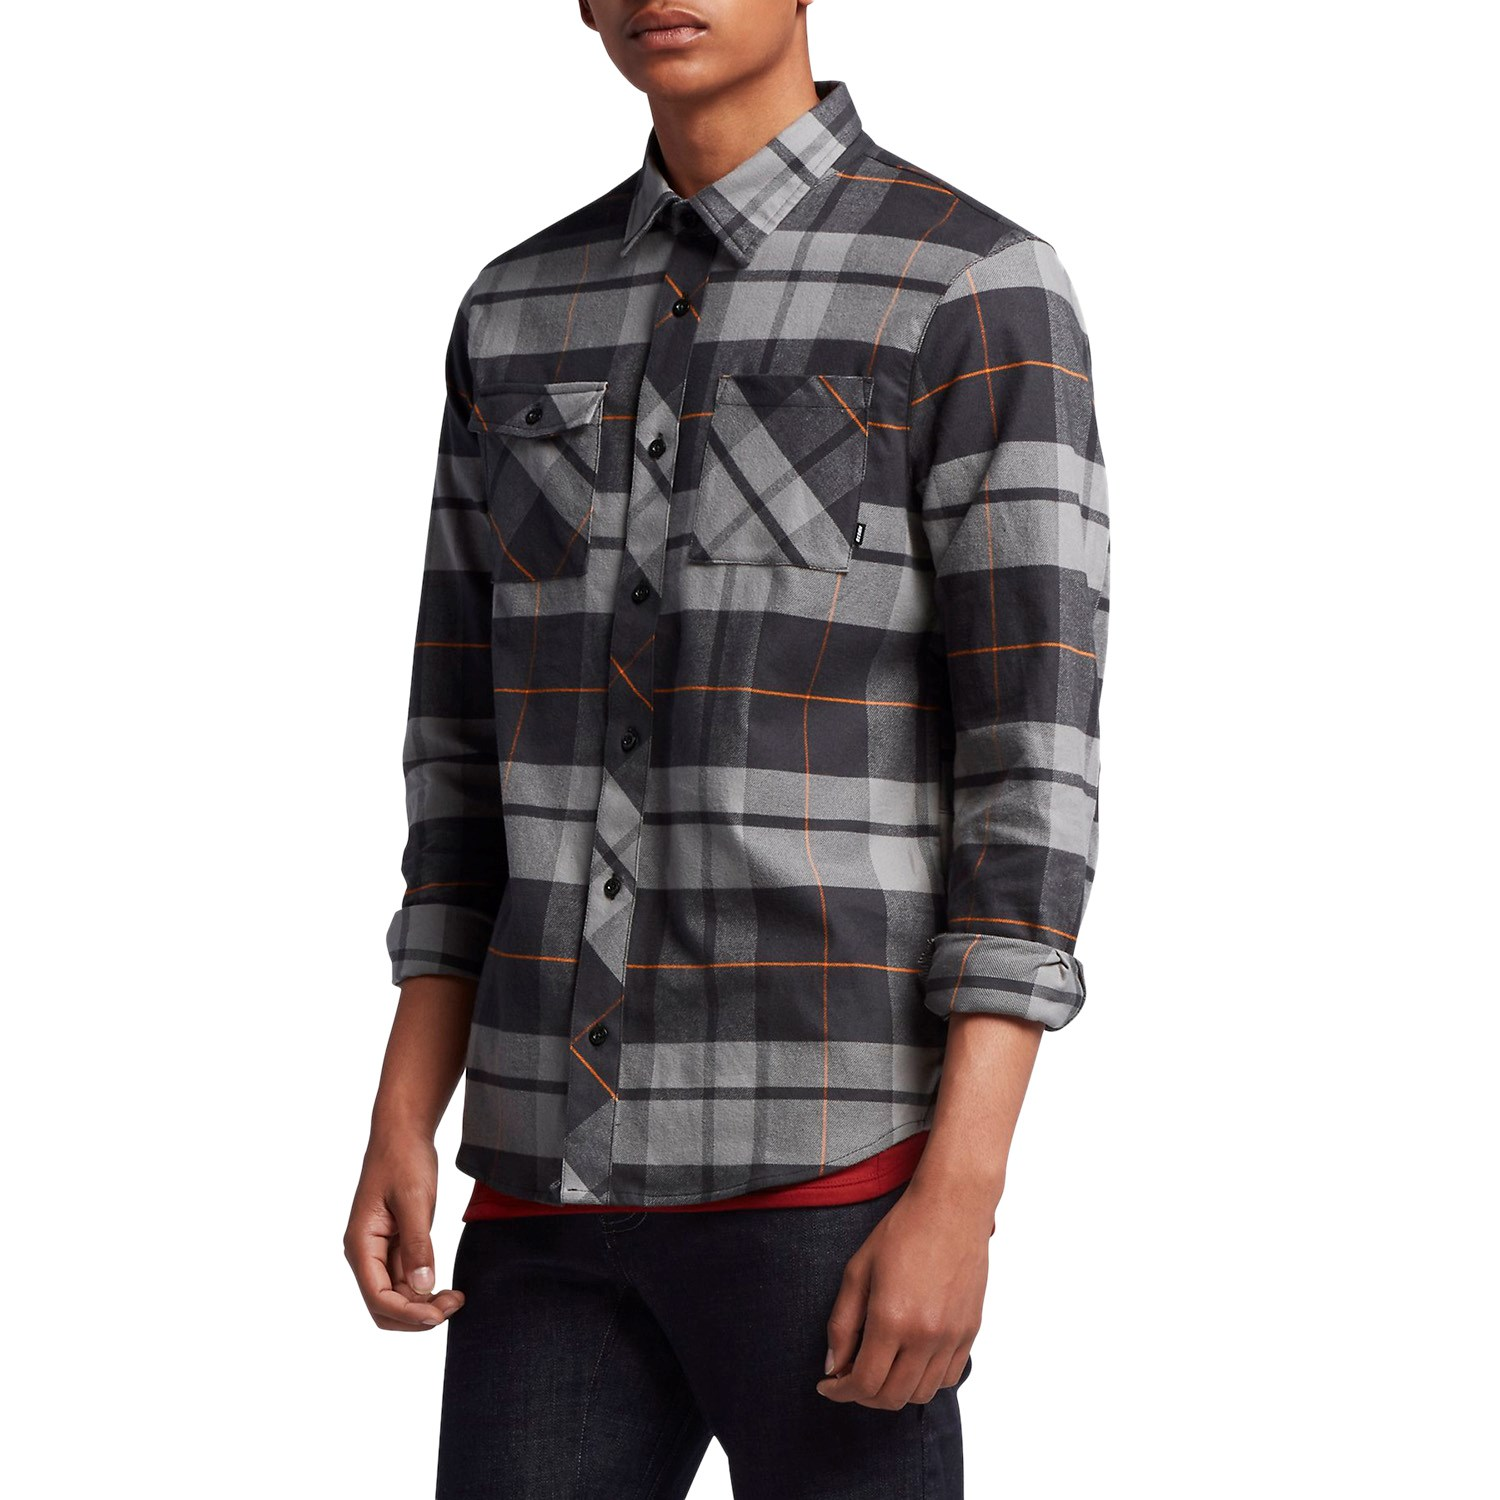 sports shoes official site competitive price Nike SB Plaid Woven Flannel Shirt | evo